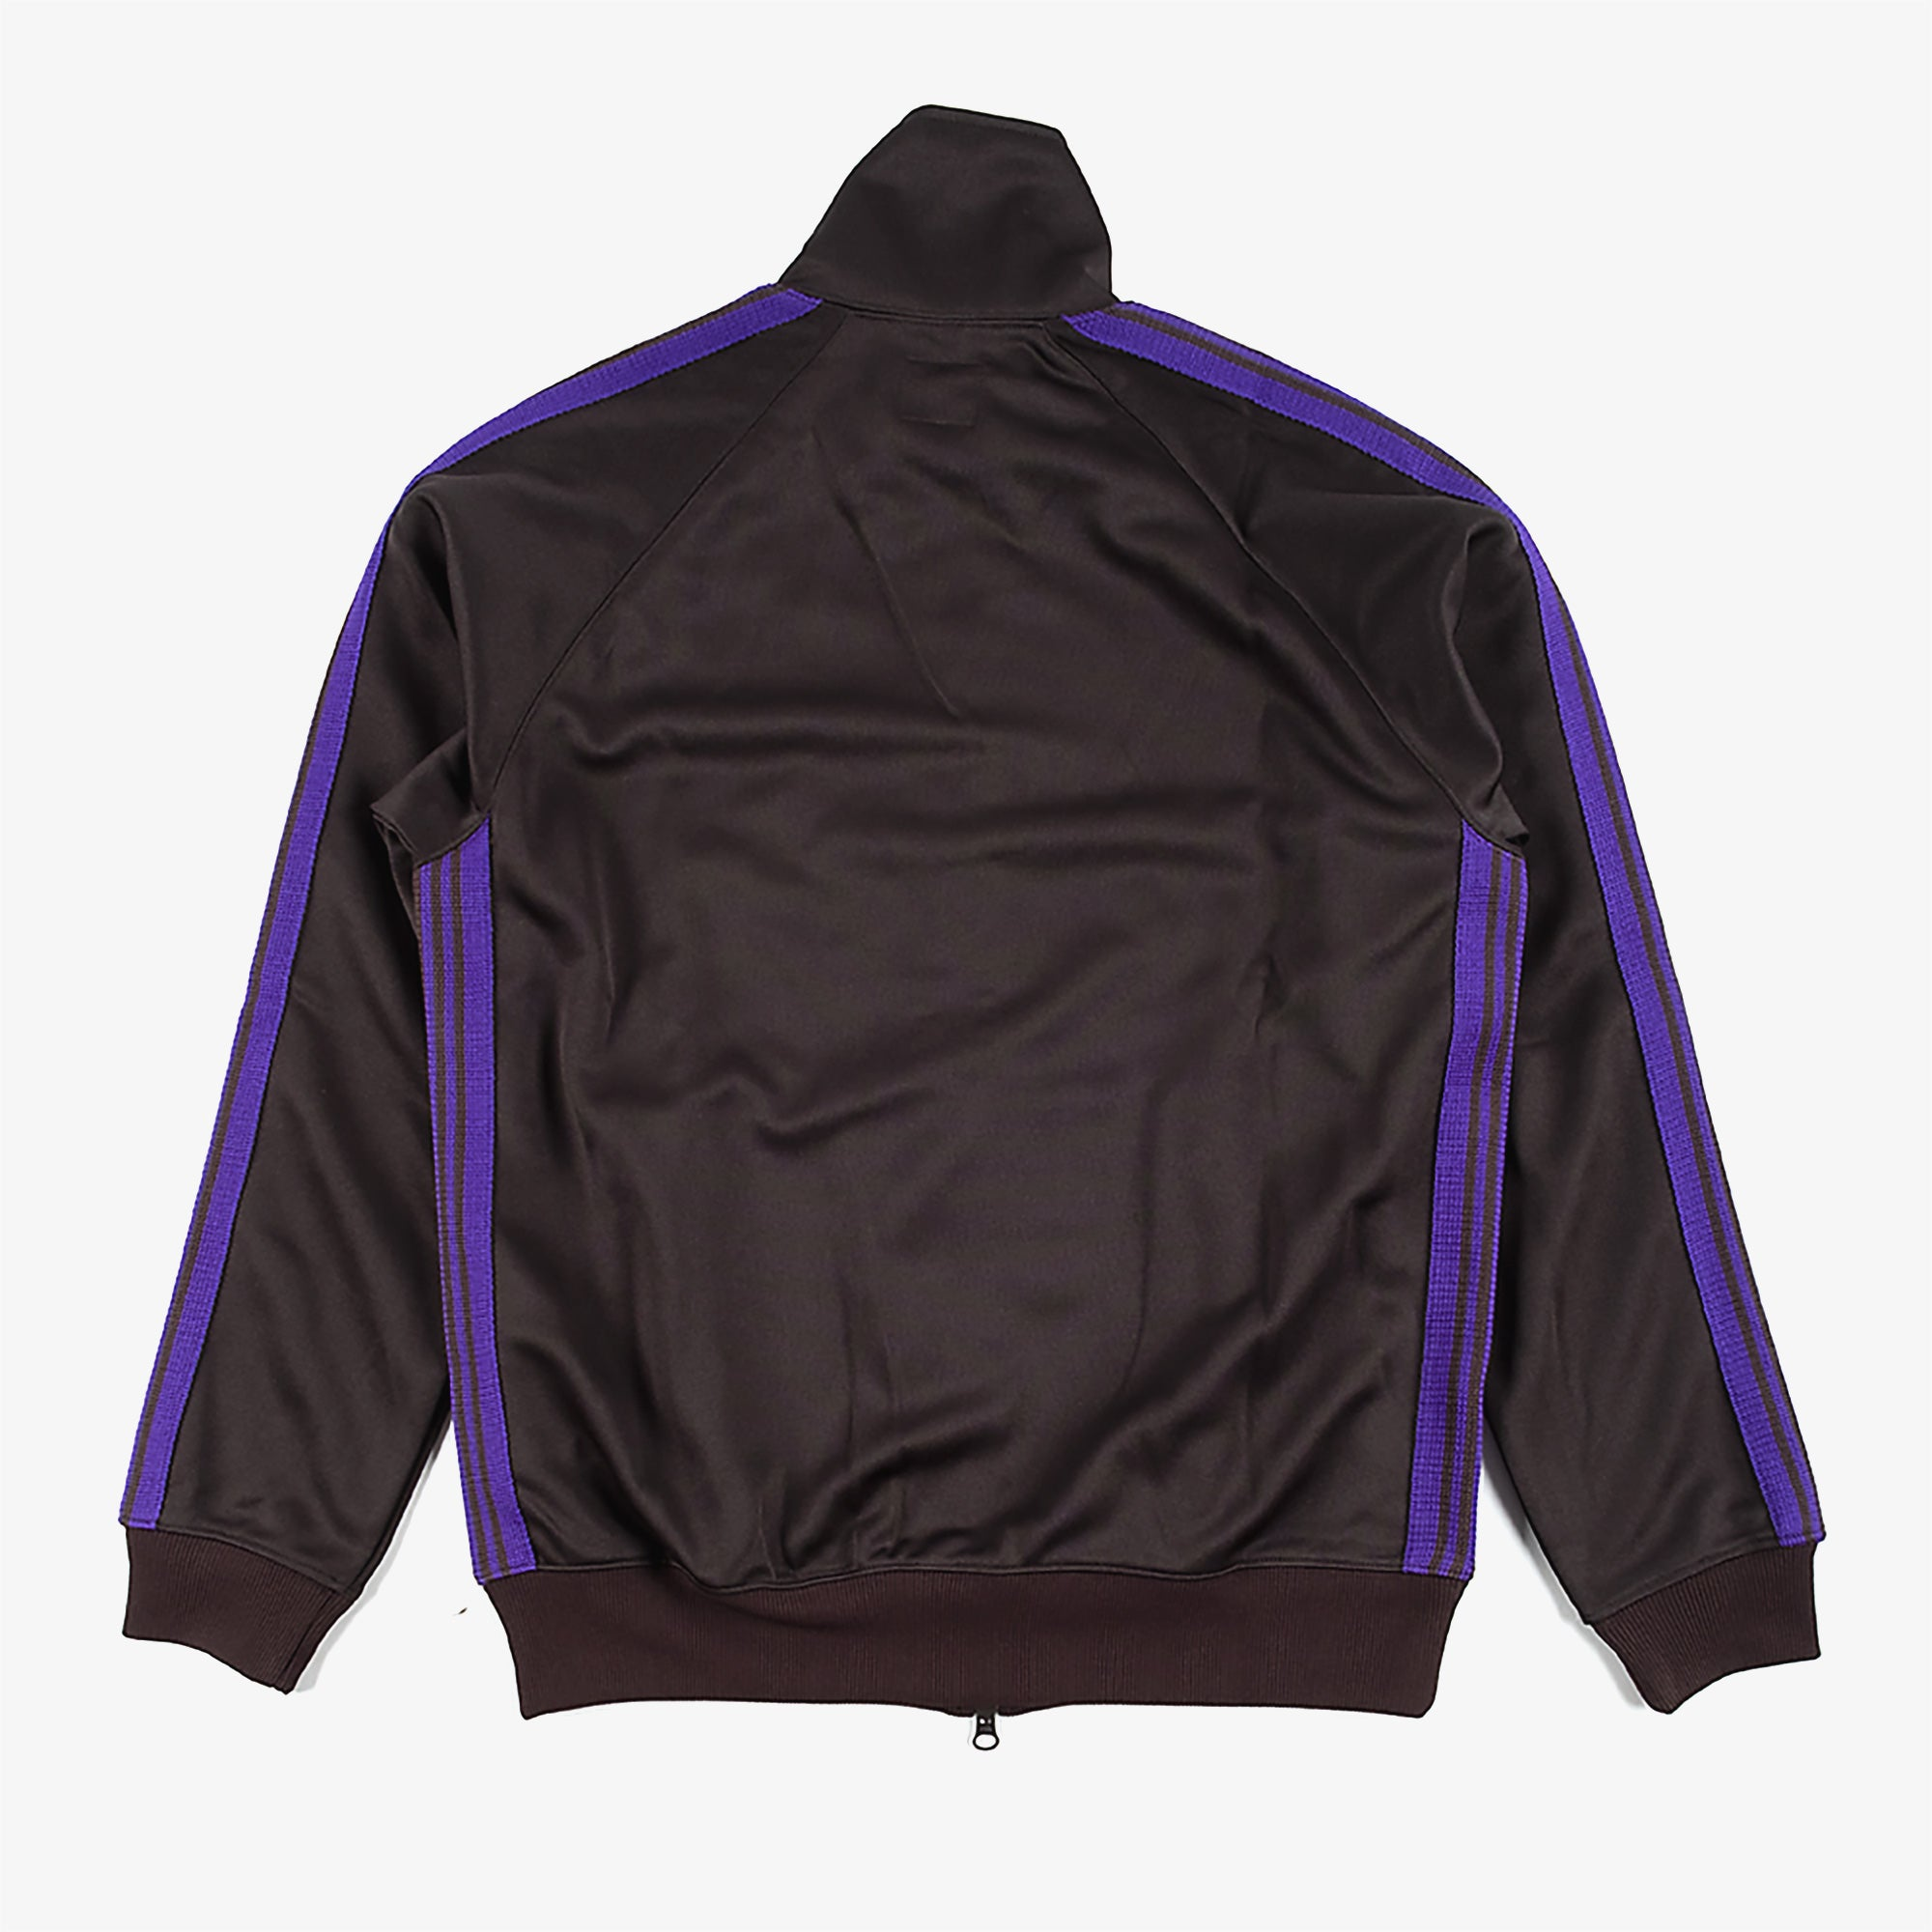 Needles M' Track Jacket Poly Smooth - Charcoal 6